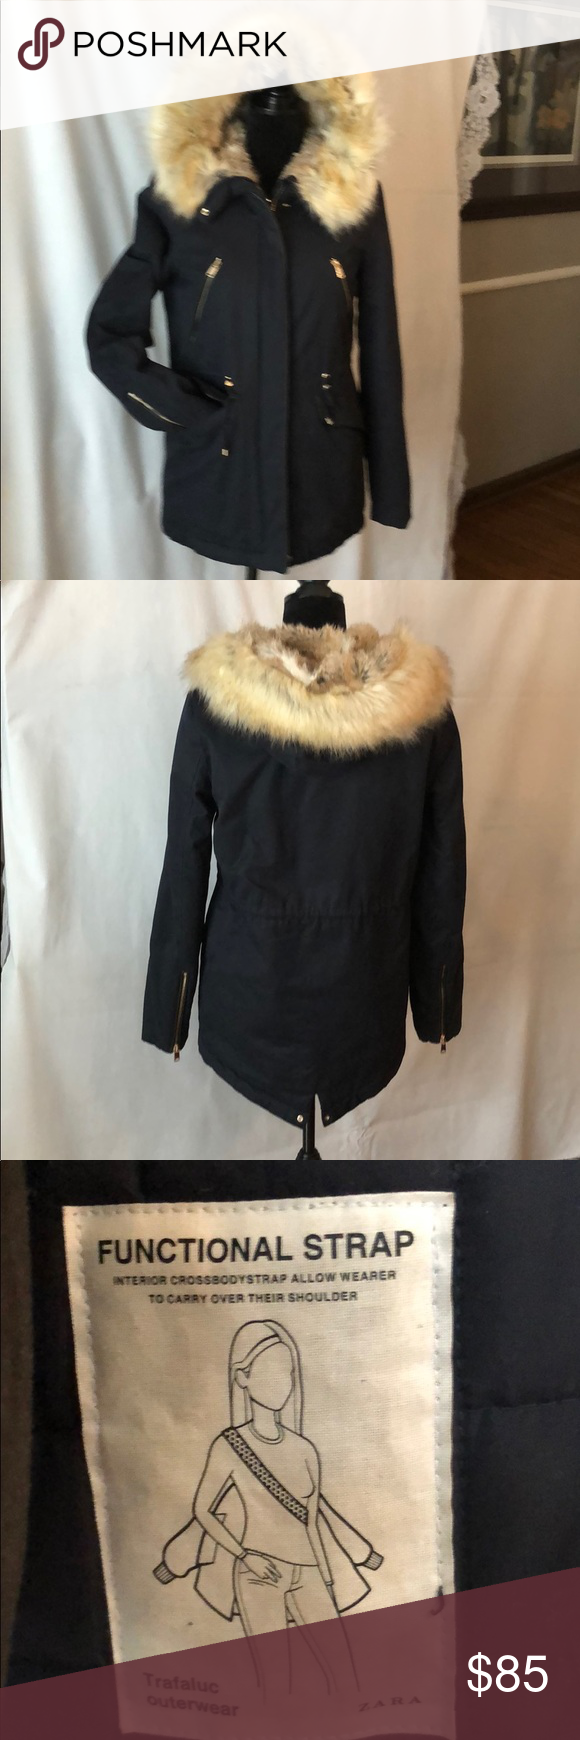 Zara Trafaluc Outerwear High Quality High Style Warm And Soft Coat Adjustable Waist Very Good Condit Outerwear Women Clothes Design Online Womens Clothing [ 1740 x 580 Pixel ]